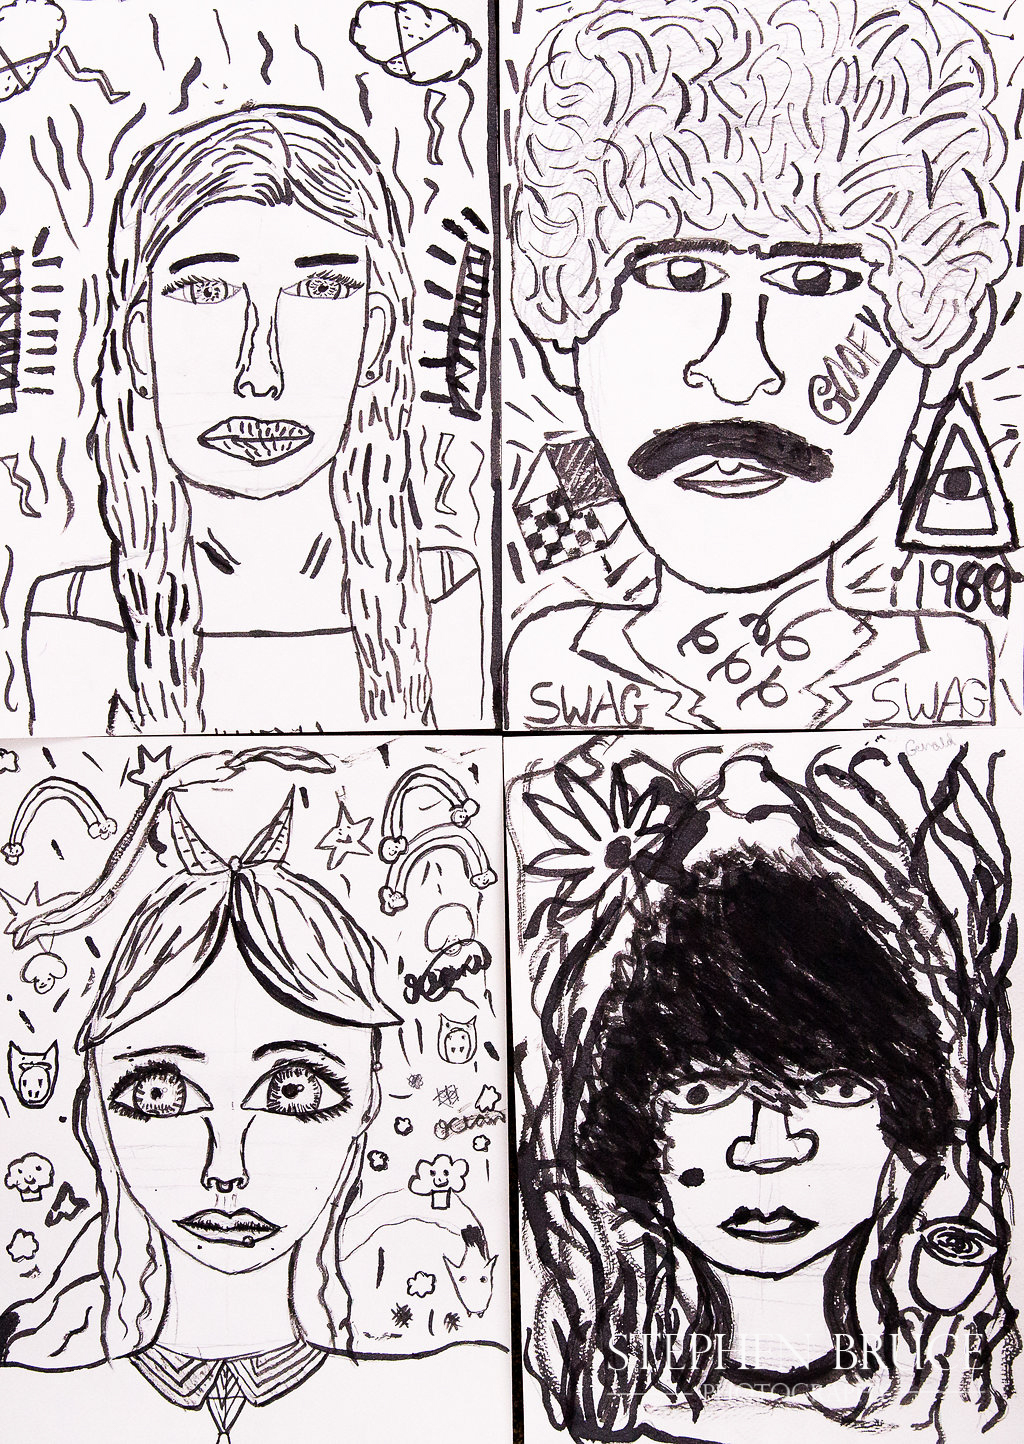 Portraits in brush and ink - Tales from the Community - Holy Trinity Primary School Sloane Square - Art Project - Chalice Arts UK Ltd - Stephen Bruce